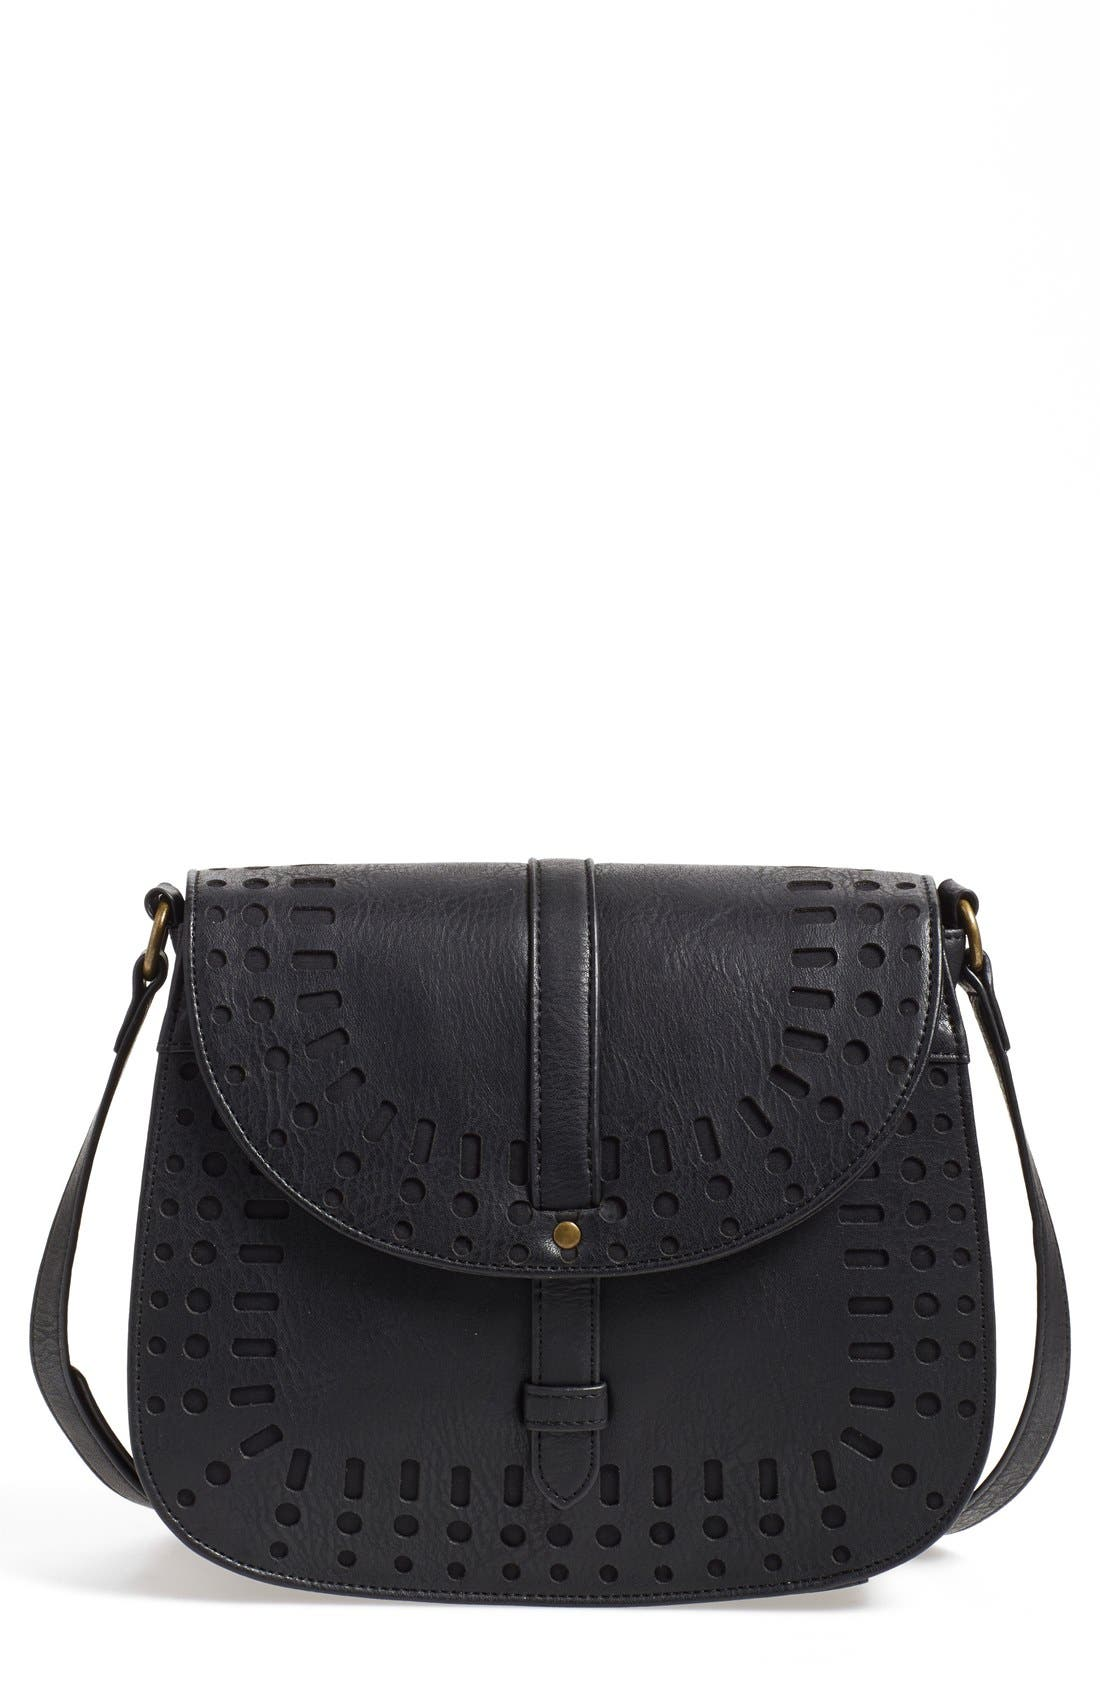 Alternate Image 1 Selected - Dirty Ballerina Perforated Faux Leather Saddle Crossbody Bag